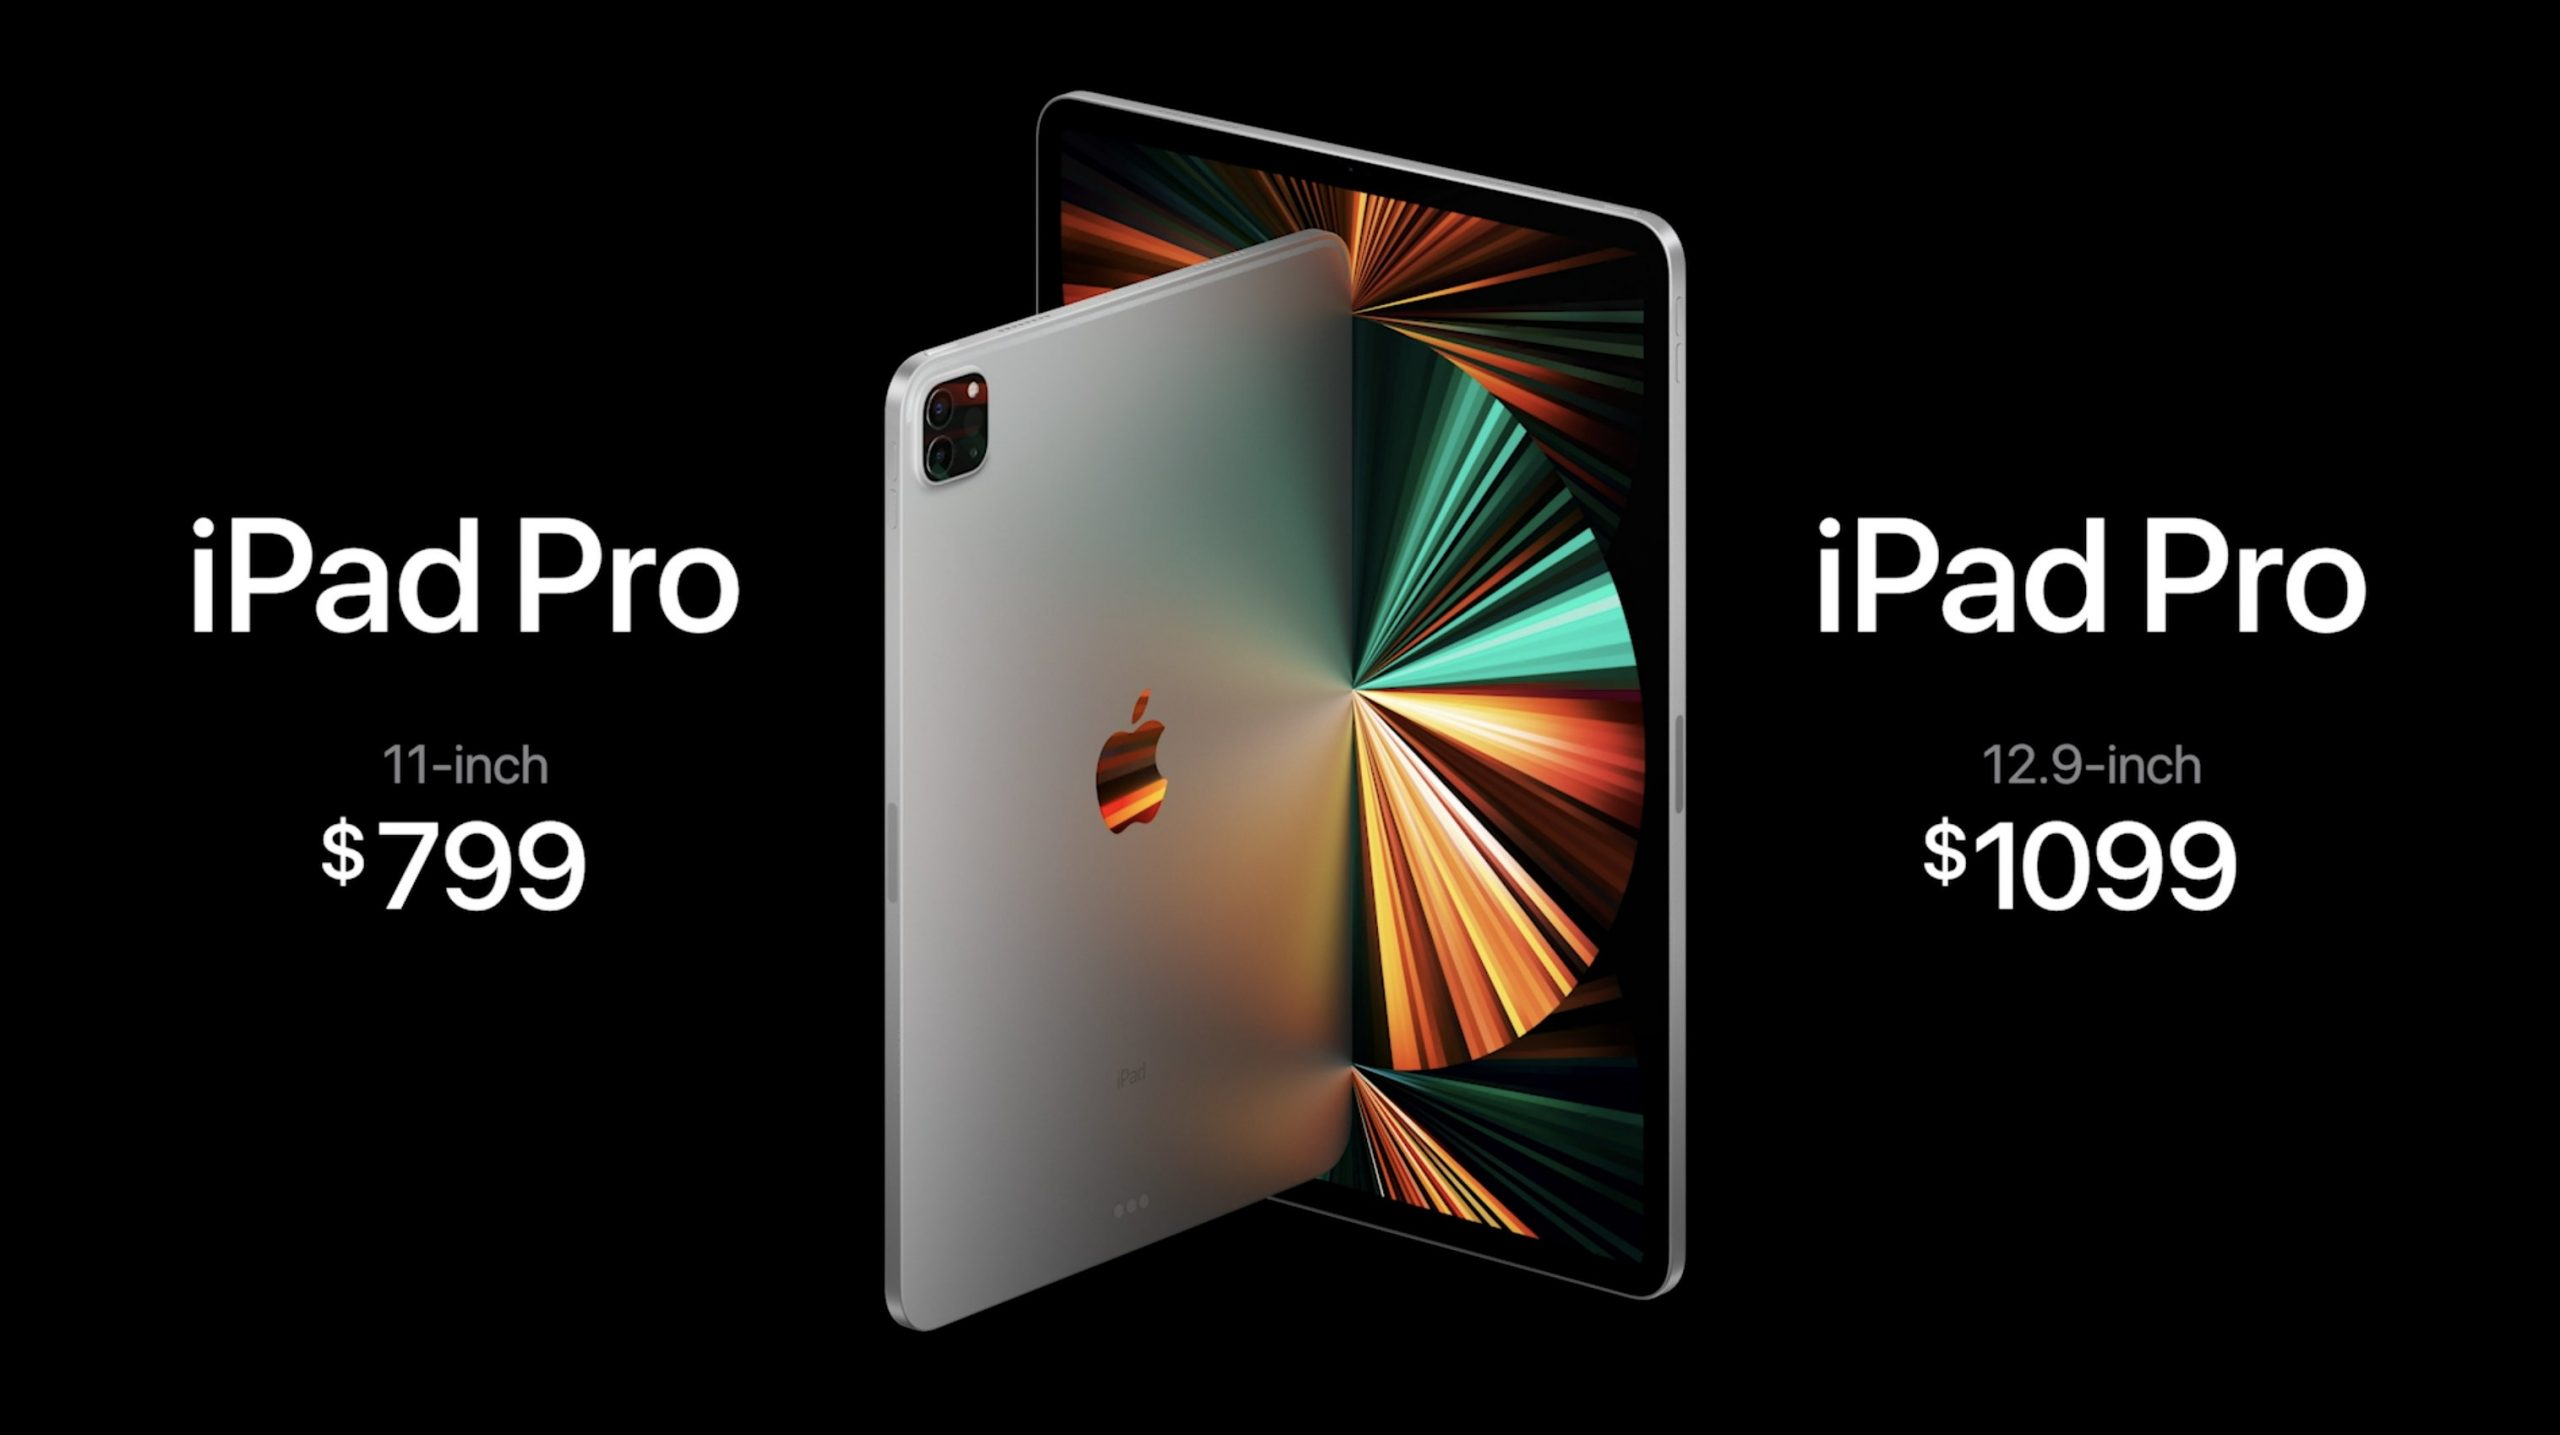 iPad Pro - Pricing And Availability